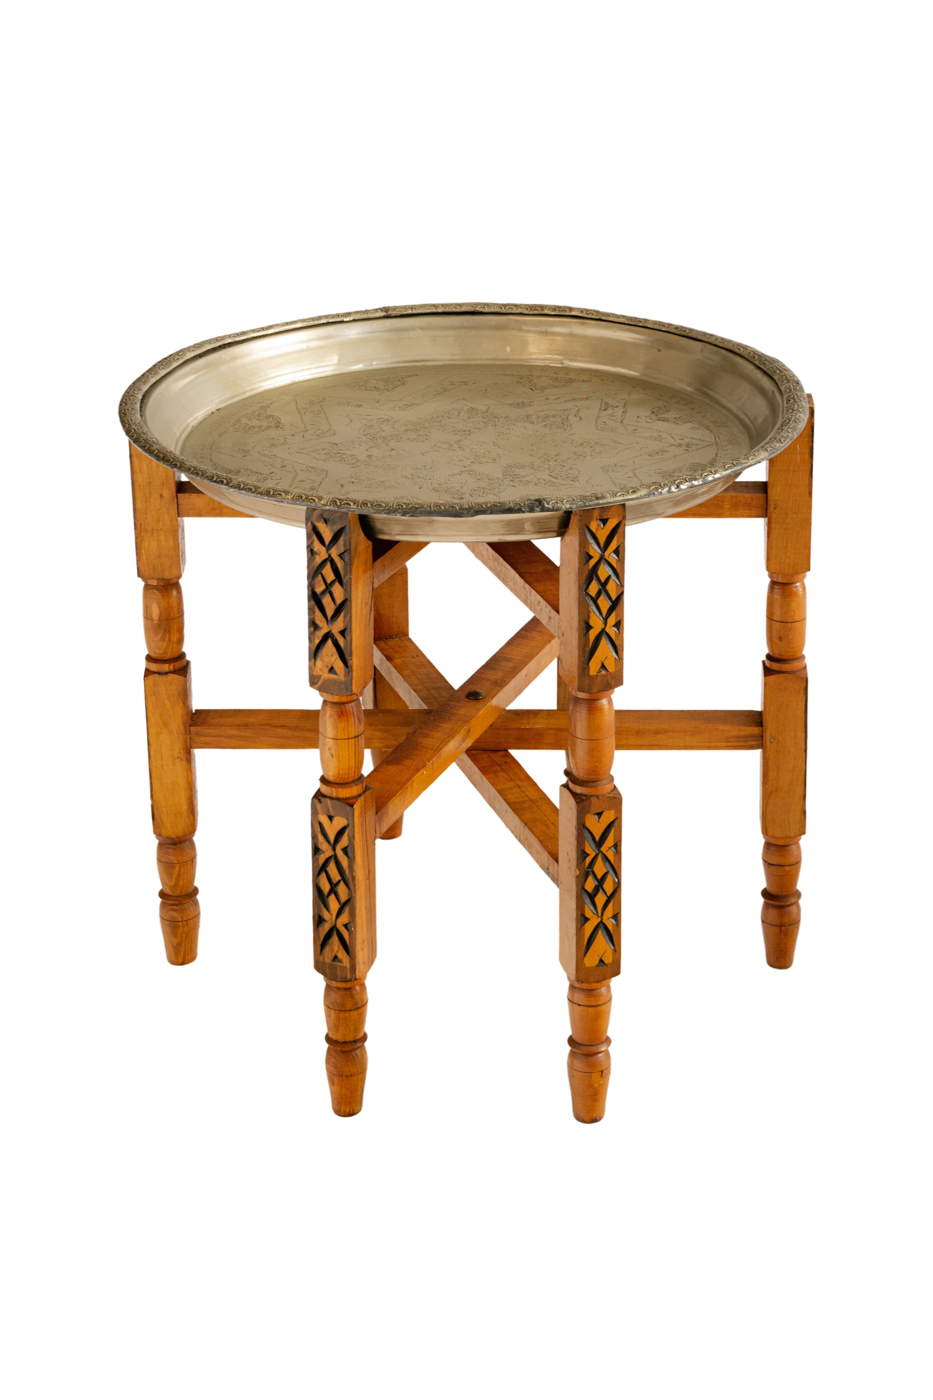 Folding side table with carved metal star-shaped tray Rub